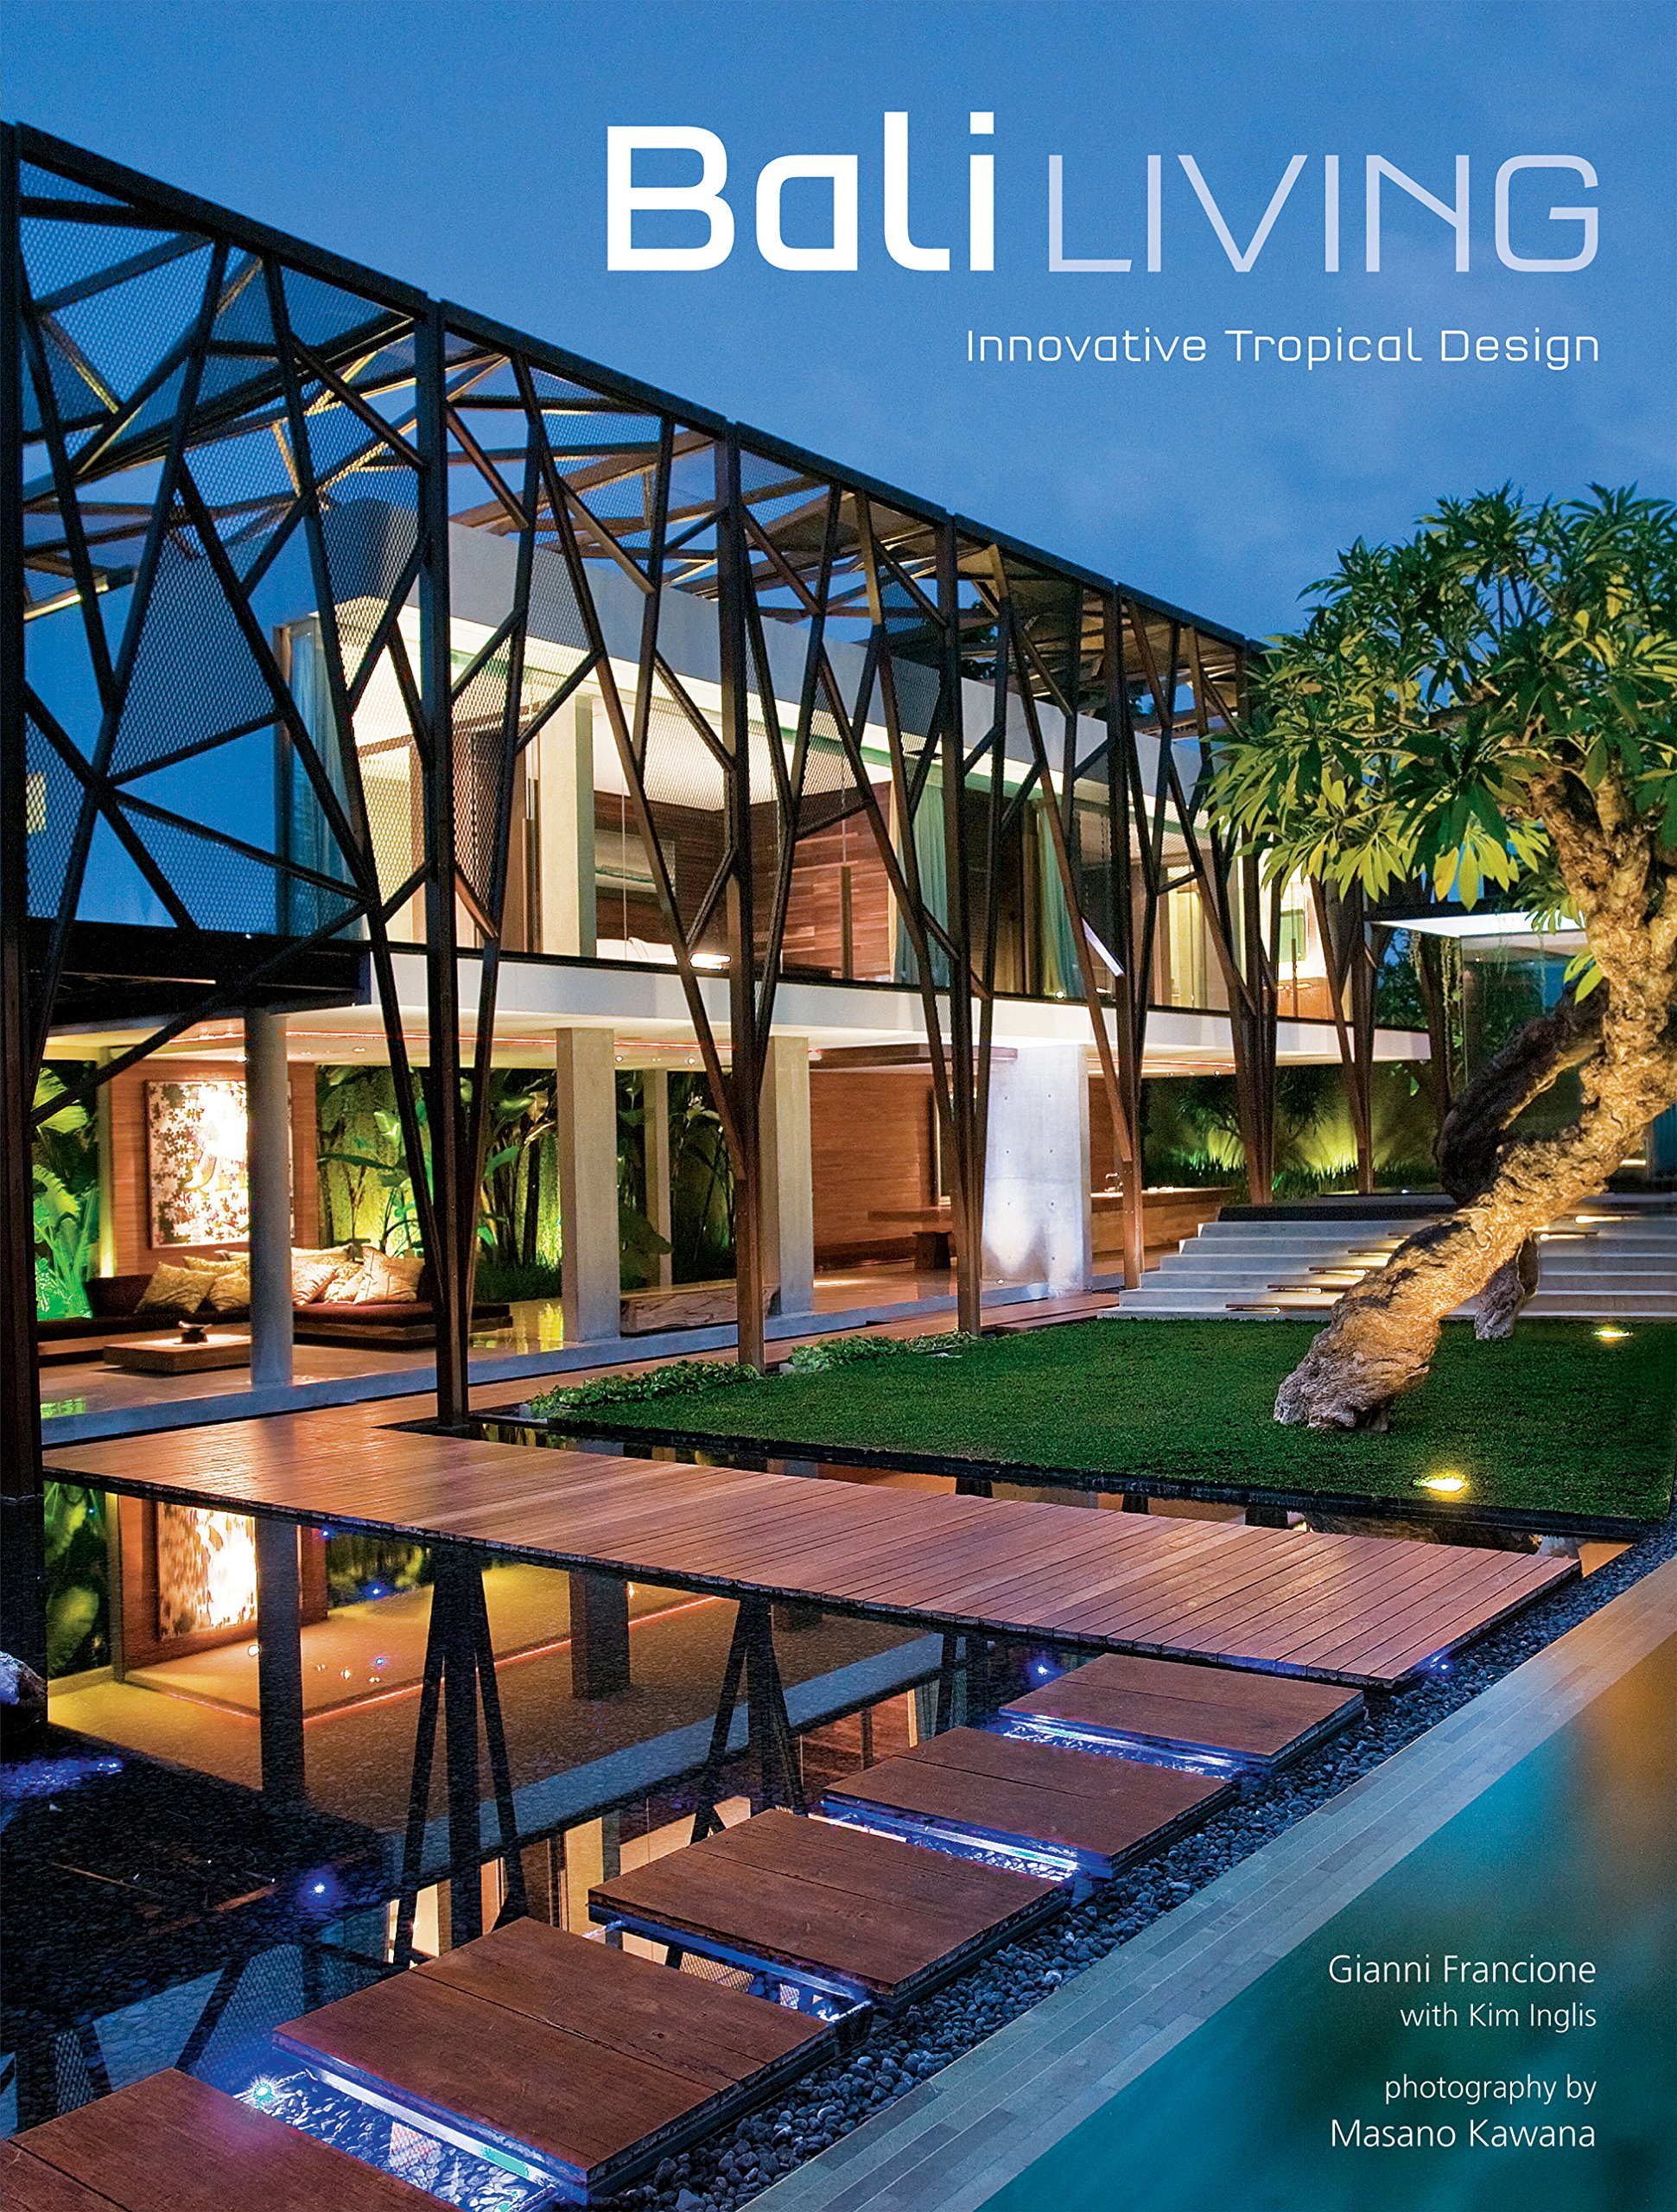 Bali Living Innovative Tropical Design Gianni Francione Masano Kawana Kim Inglis 8601422081732 Amazon Books